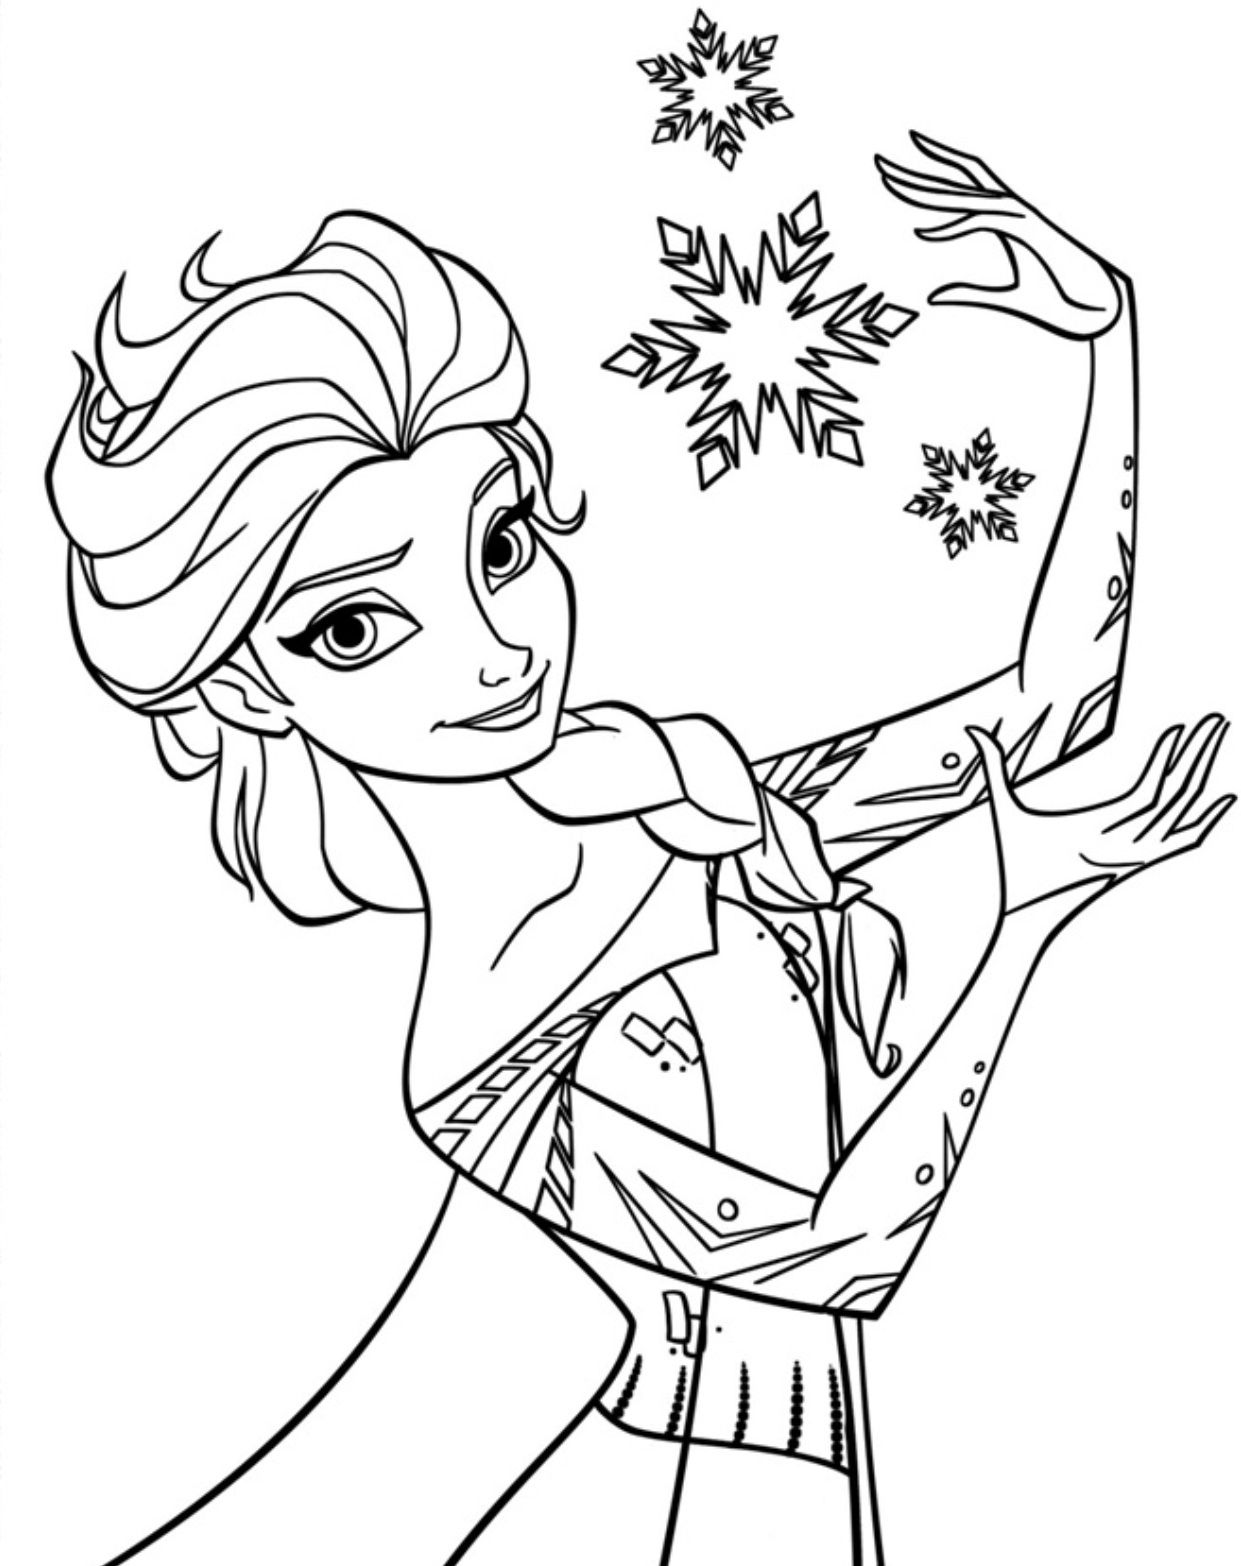 frozen coloring pages for print - photo#8